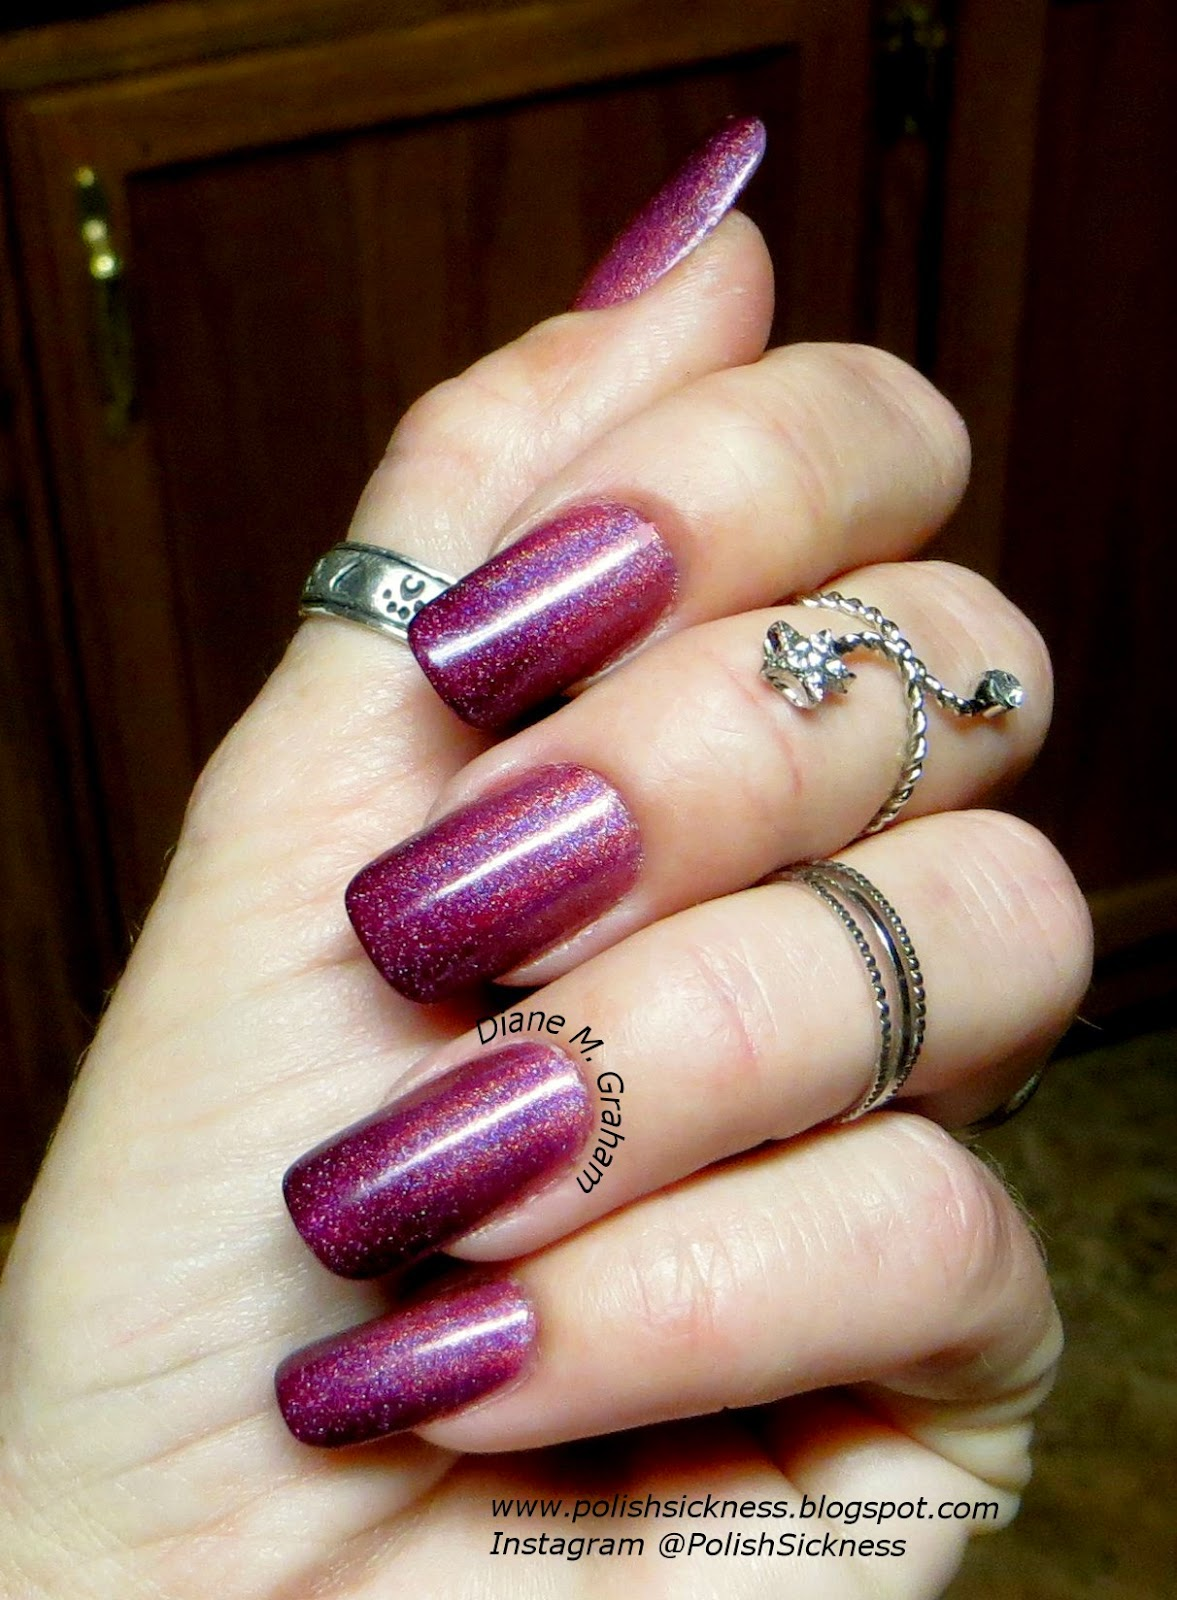 OPI DS Signature, OPI DS Extravagance gradient